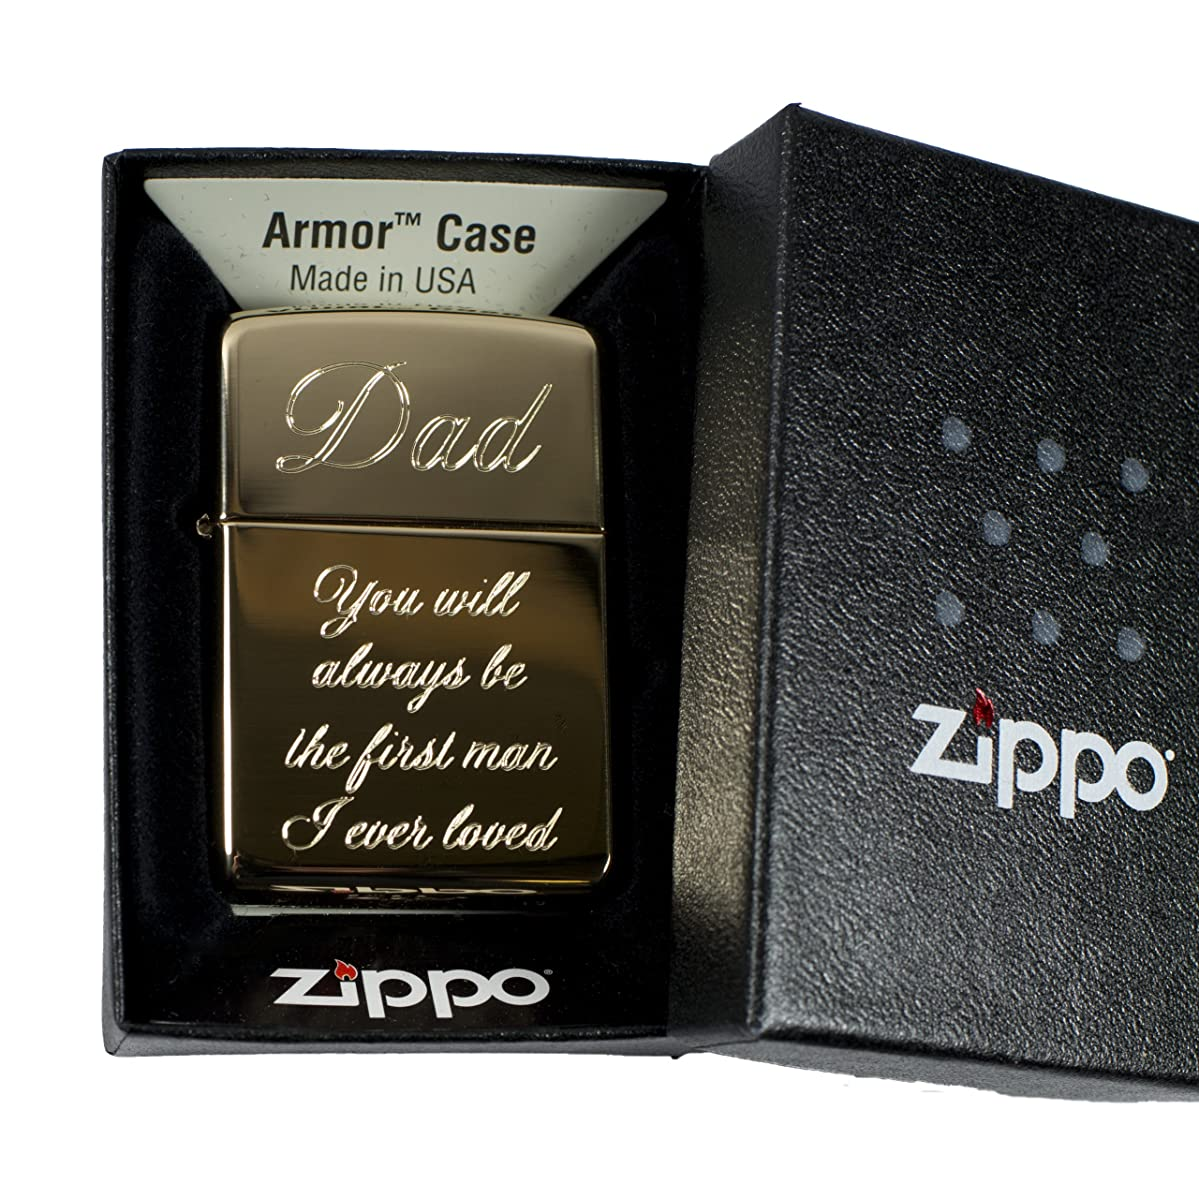 Lighter - Golden Dad You will always be the first man I ever loved (engraved by Hip Flask Plus) on Zippo 169 Brass